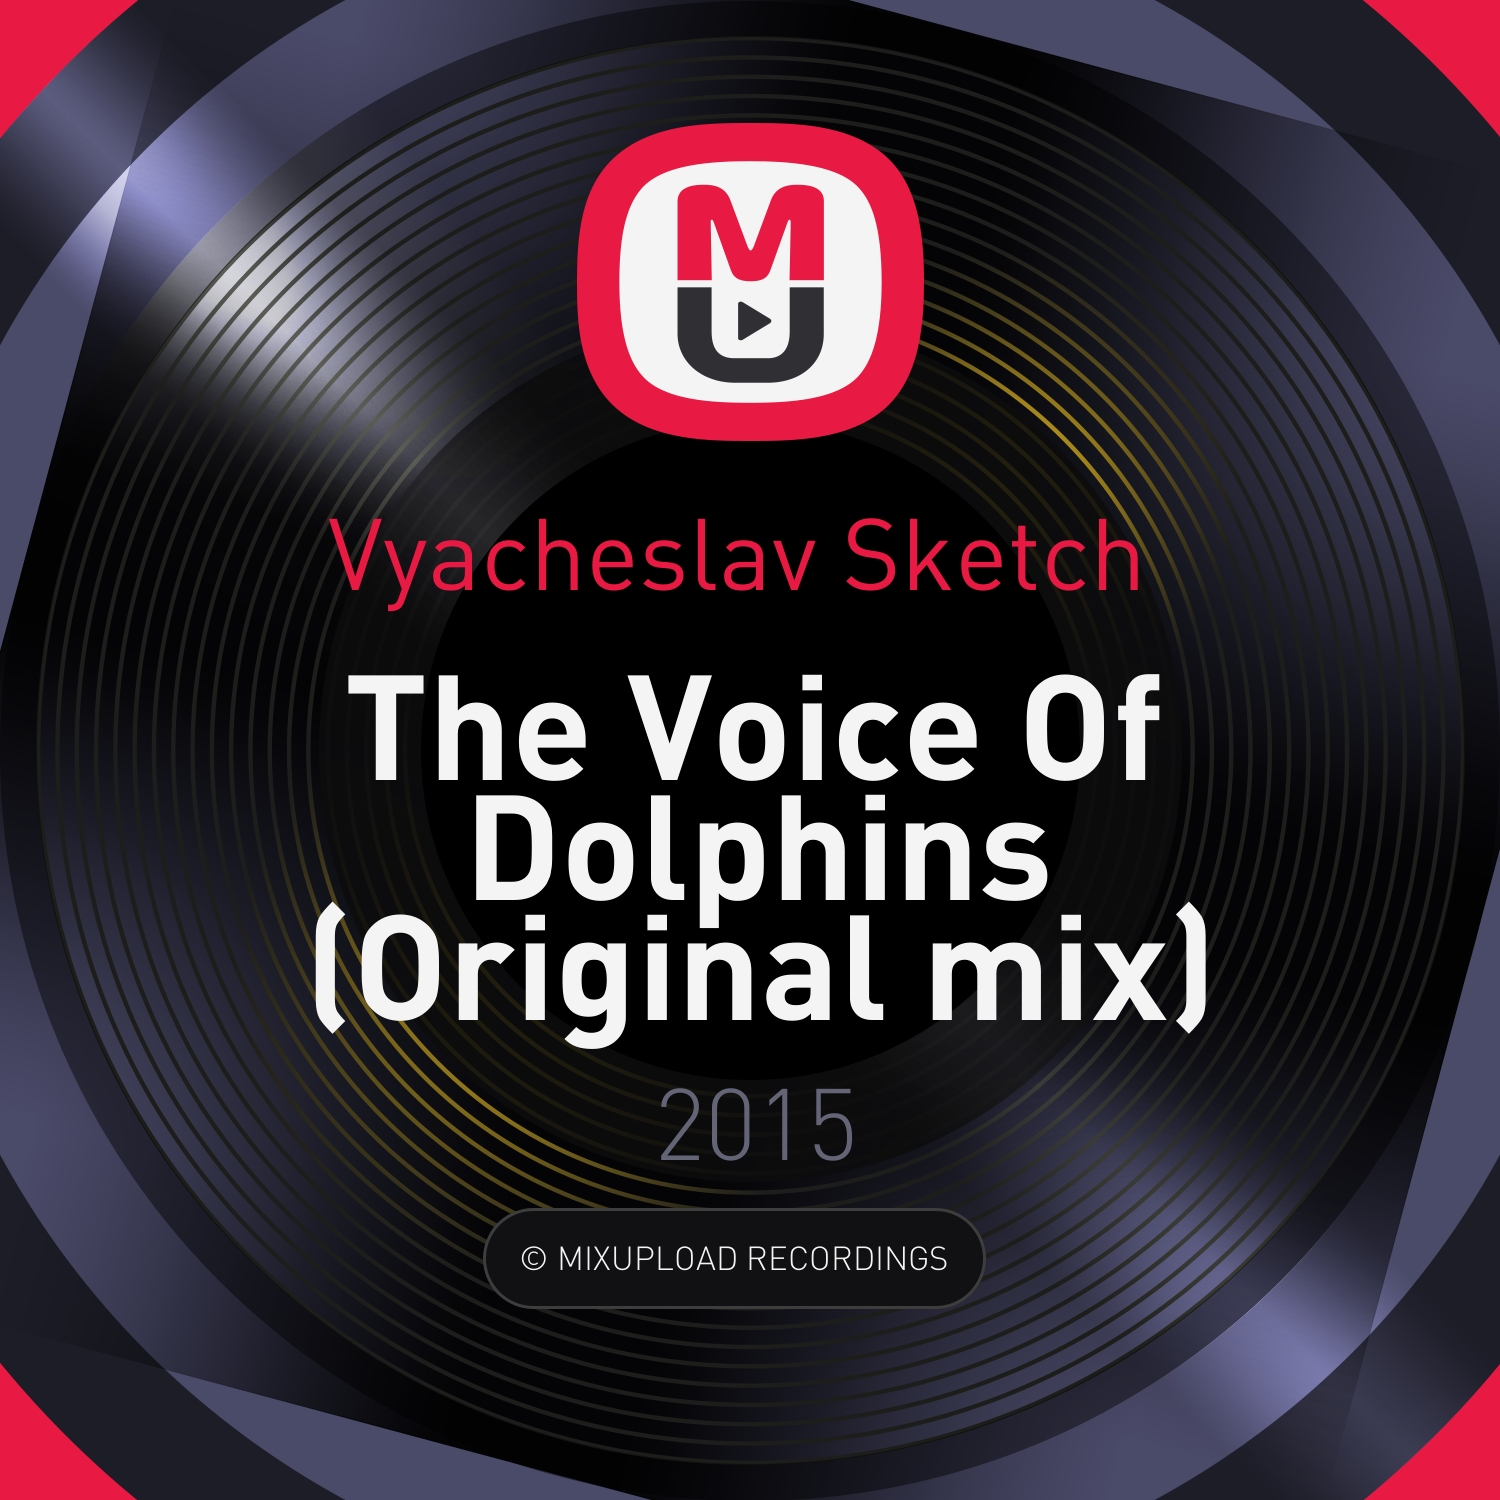 Vyacheslav Sketch  - The Voice Of Dolphins (Original mix)